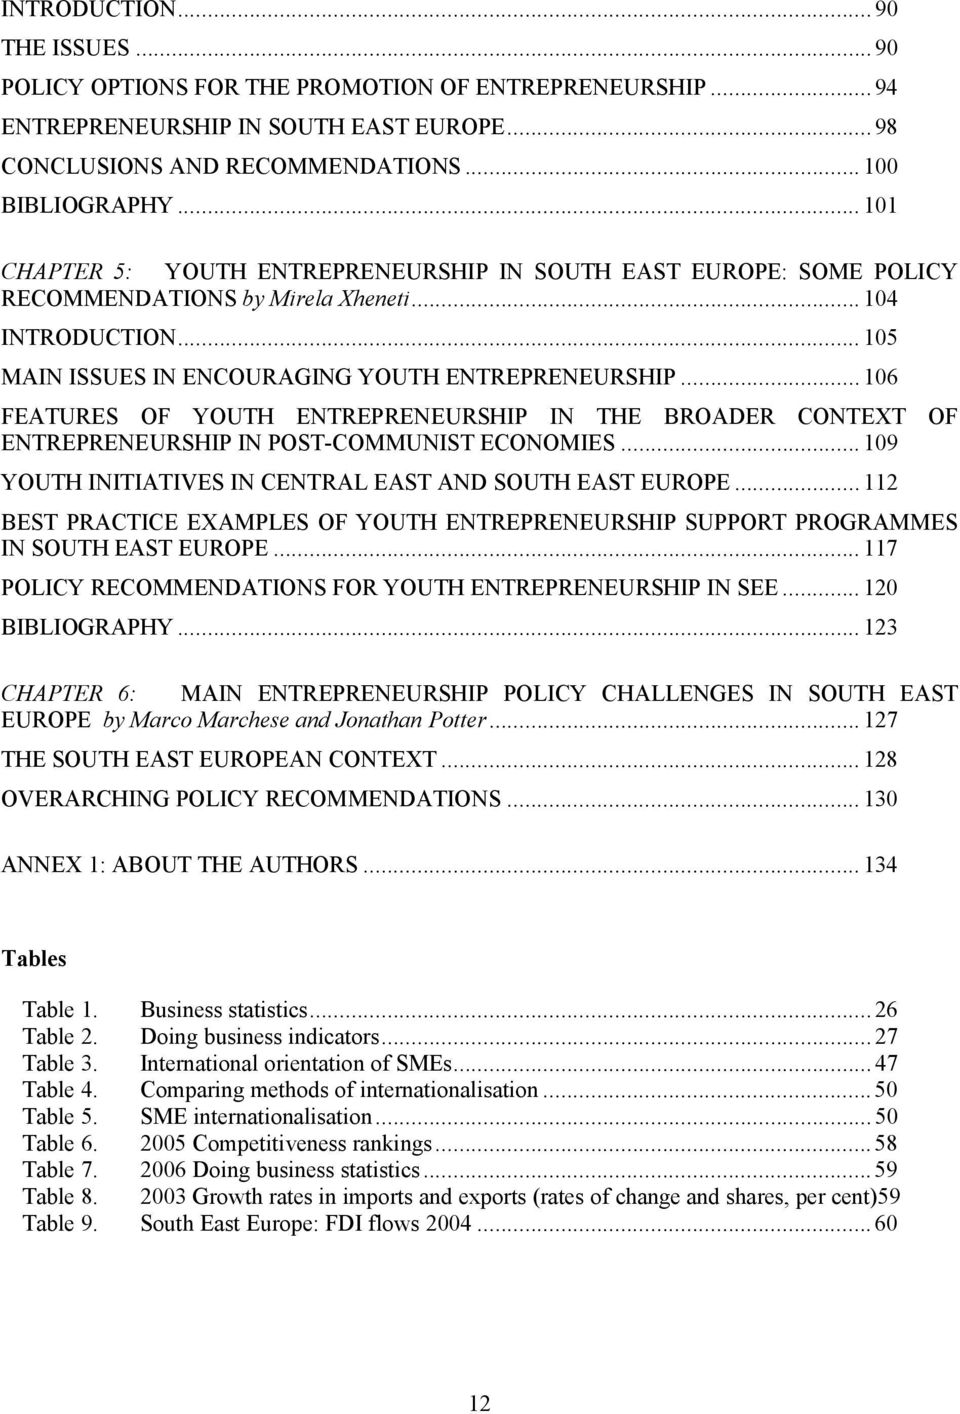 .. 106 FEATURES OF YOUTH ENTREPRENEURSHIP IN THE BROADER CONTEXT OF ENTREPRENEURSHIP IN POST-COMMUNIST ECONOMIES... 109 YOUTH INITIATIVES IN CENTRAL EAST AND SOUTH EAST EUROPE.